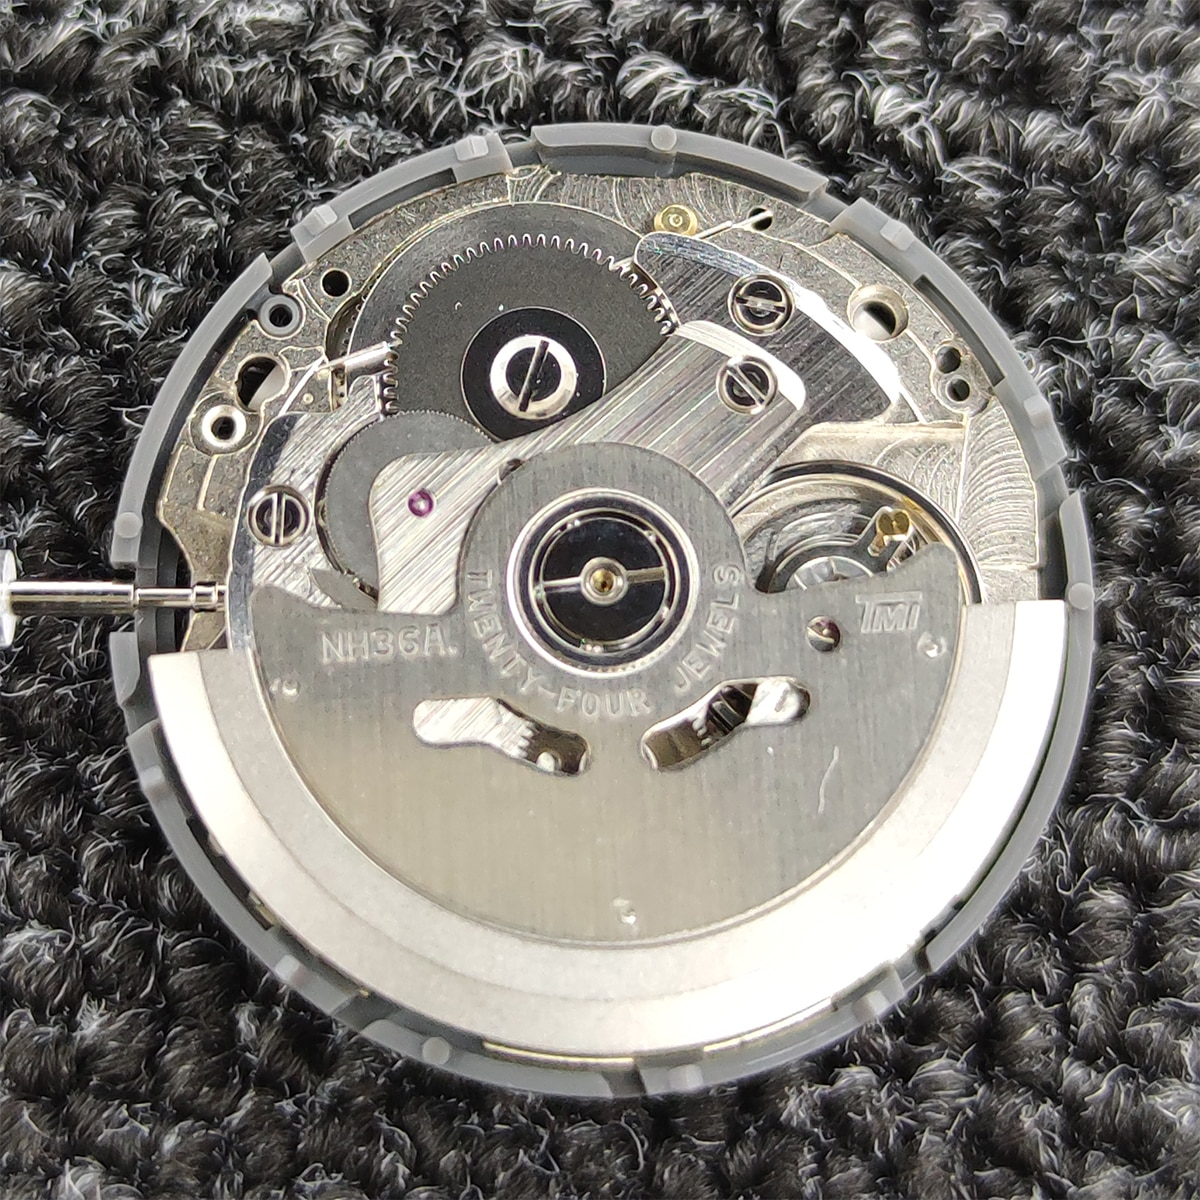 Brand New Original NH36 Movement Automatic Dual Calendar 3Oclock Crown 3.8 O'clock Crown Watch Movement Replacement Parts enlarge